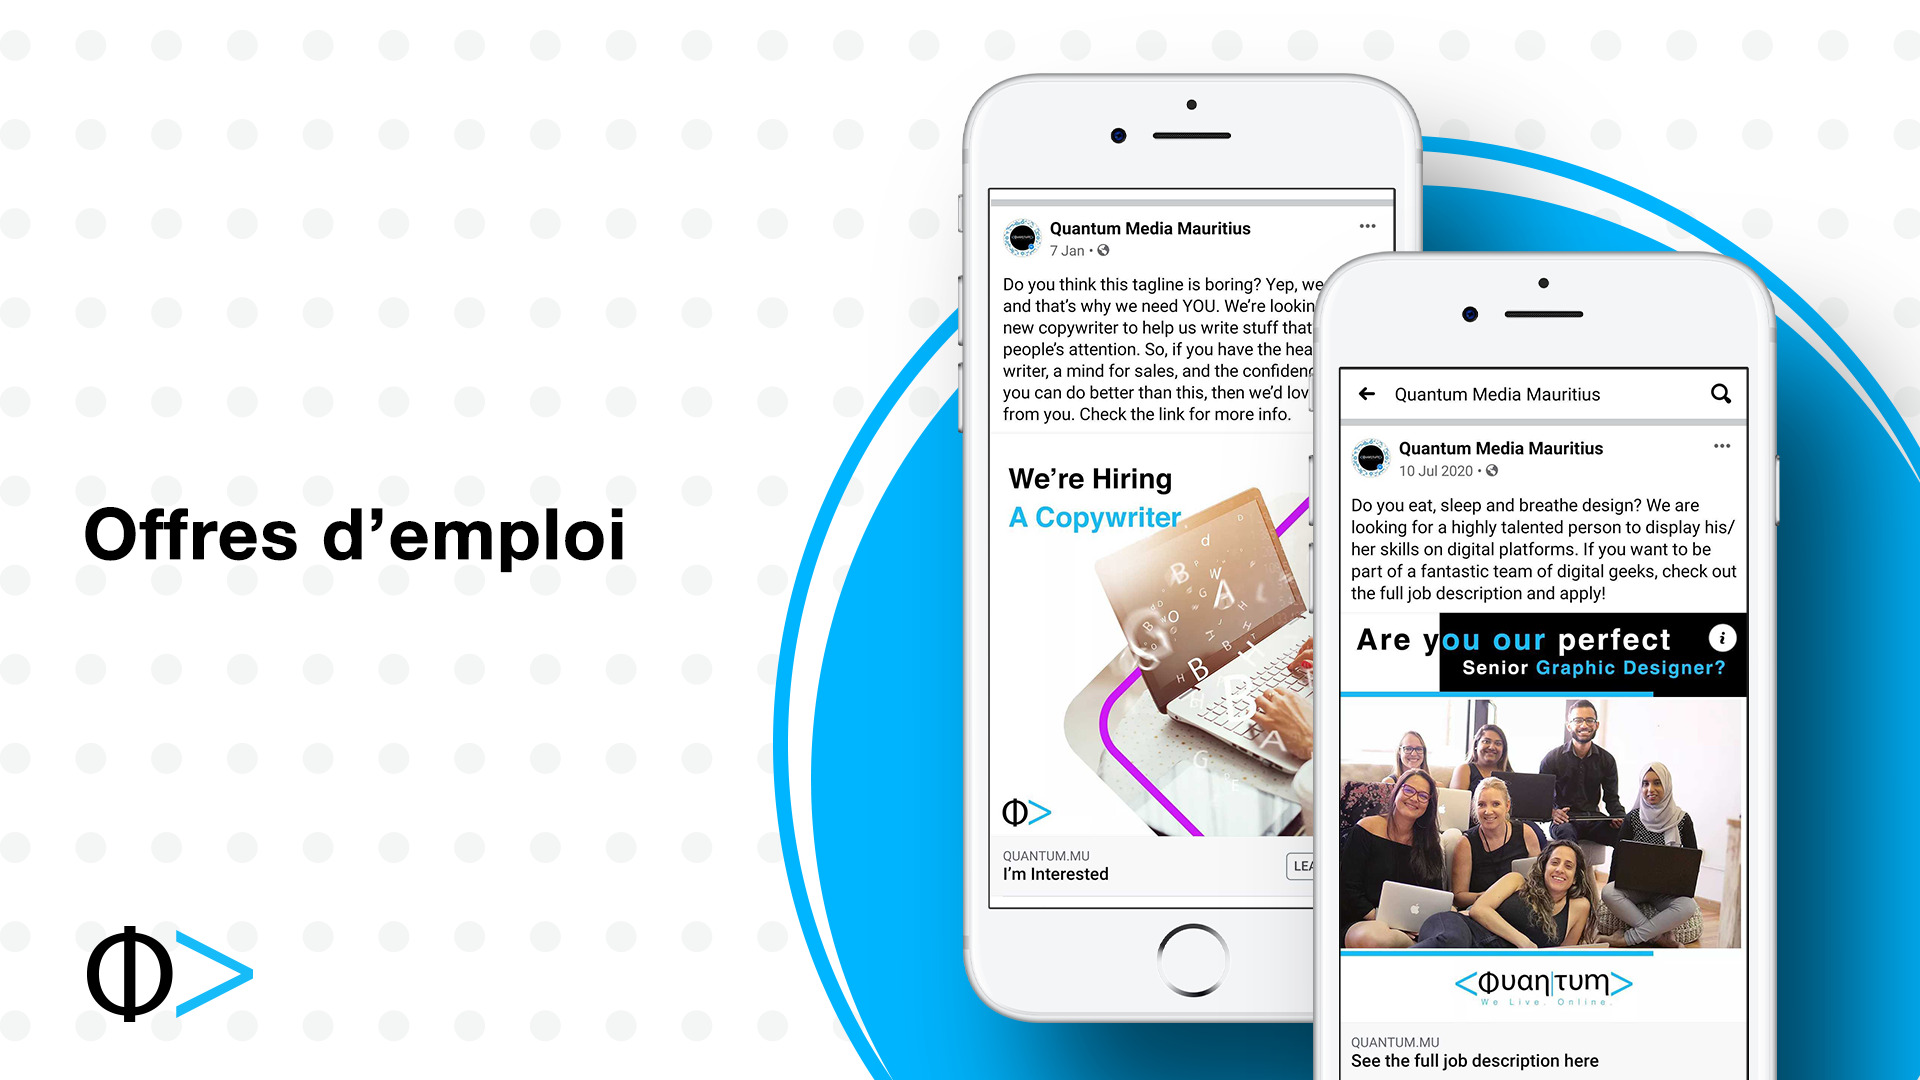 3_Offres demploi_Blog_template.png